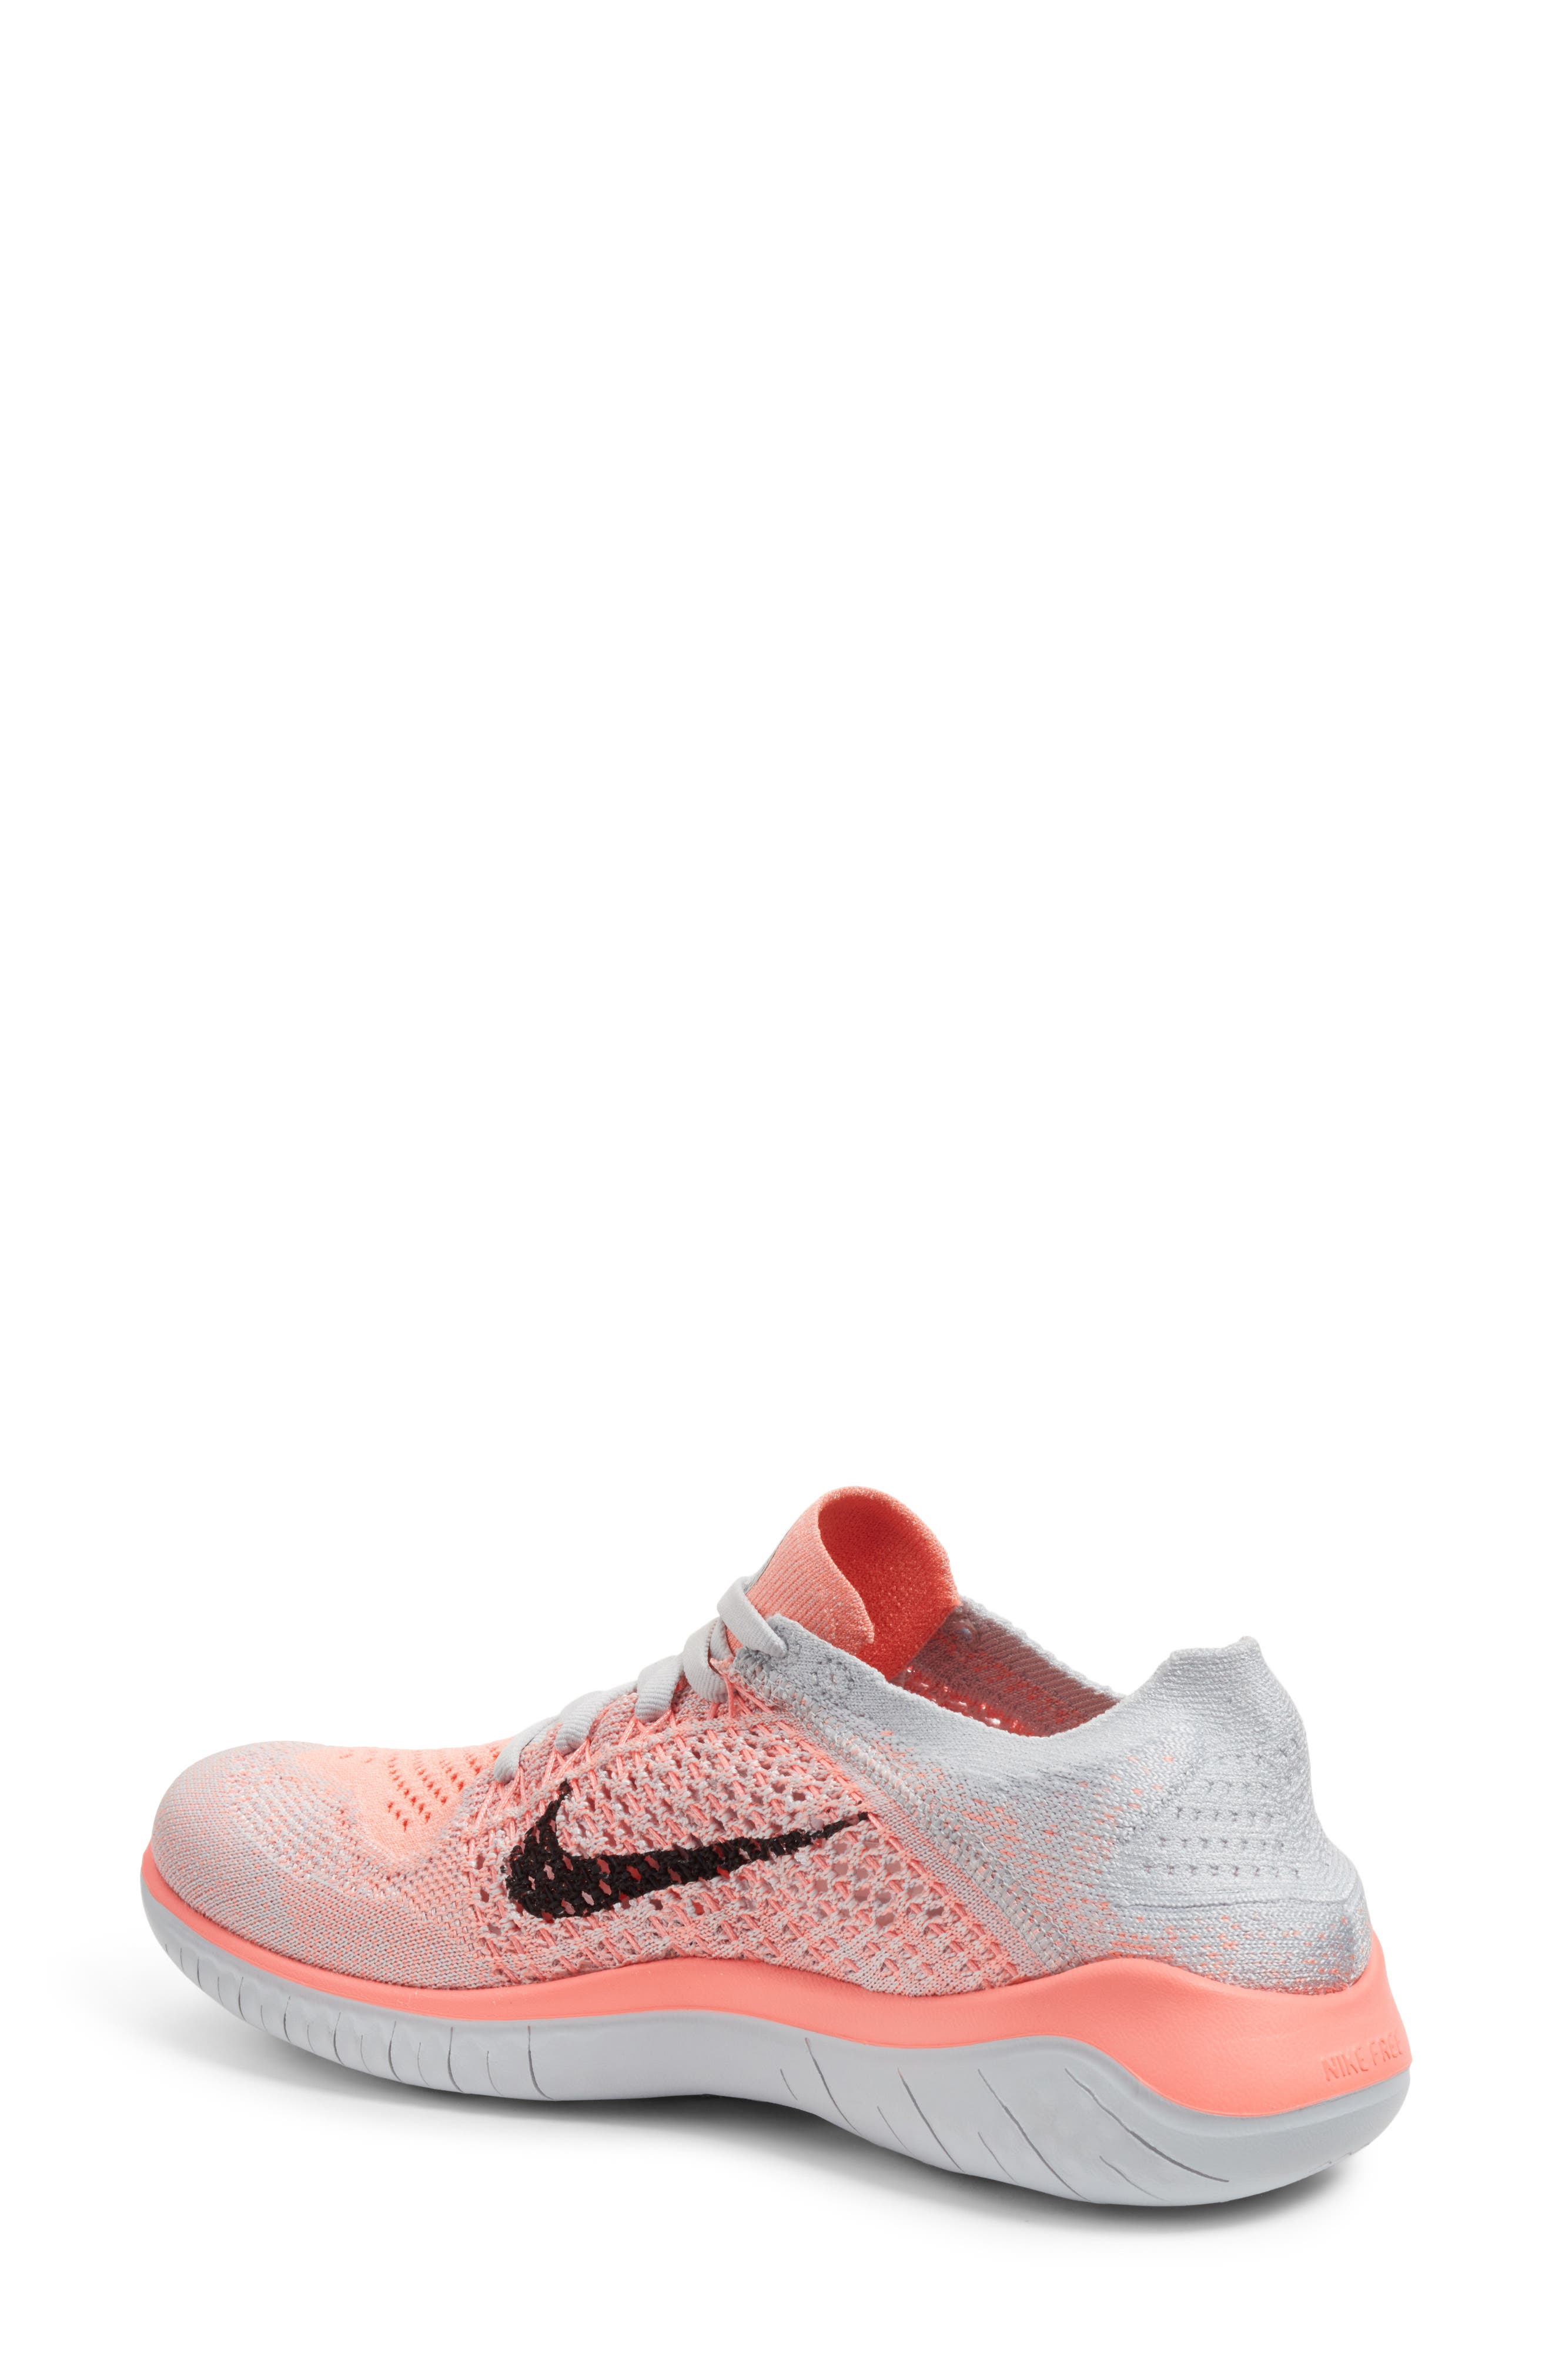 Free RN Flyknit 2018 Running Shoe,                             Alternate thumbnail 21, color,